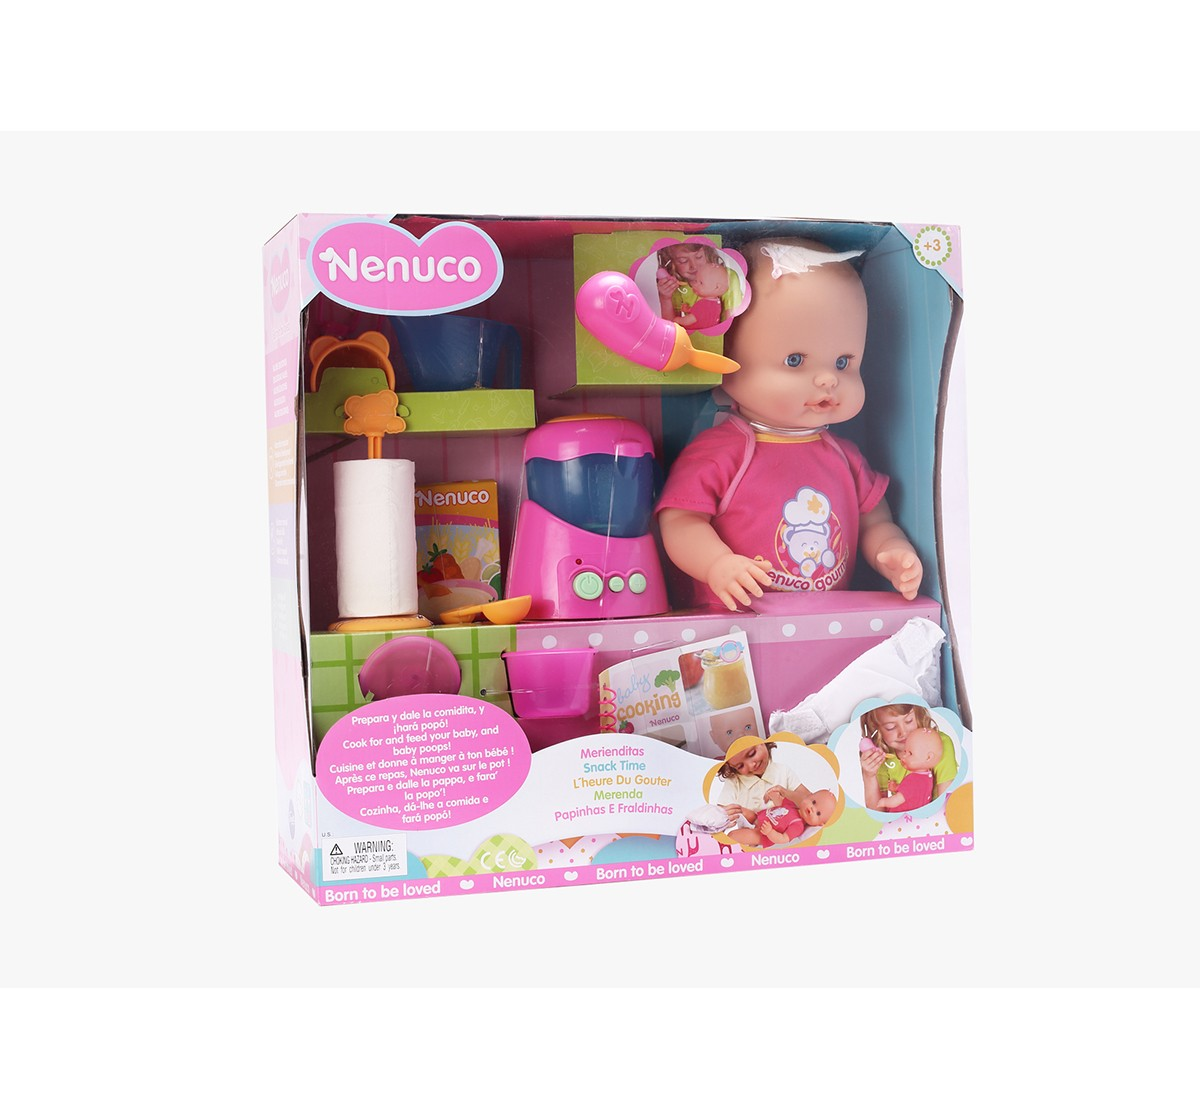 Nenuco Snack Time Doll  & Accessories for Girls age 3Y+